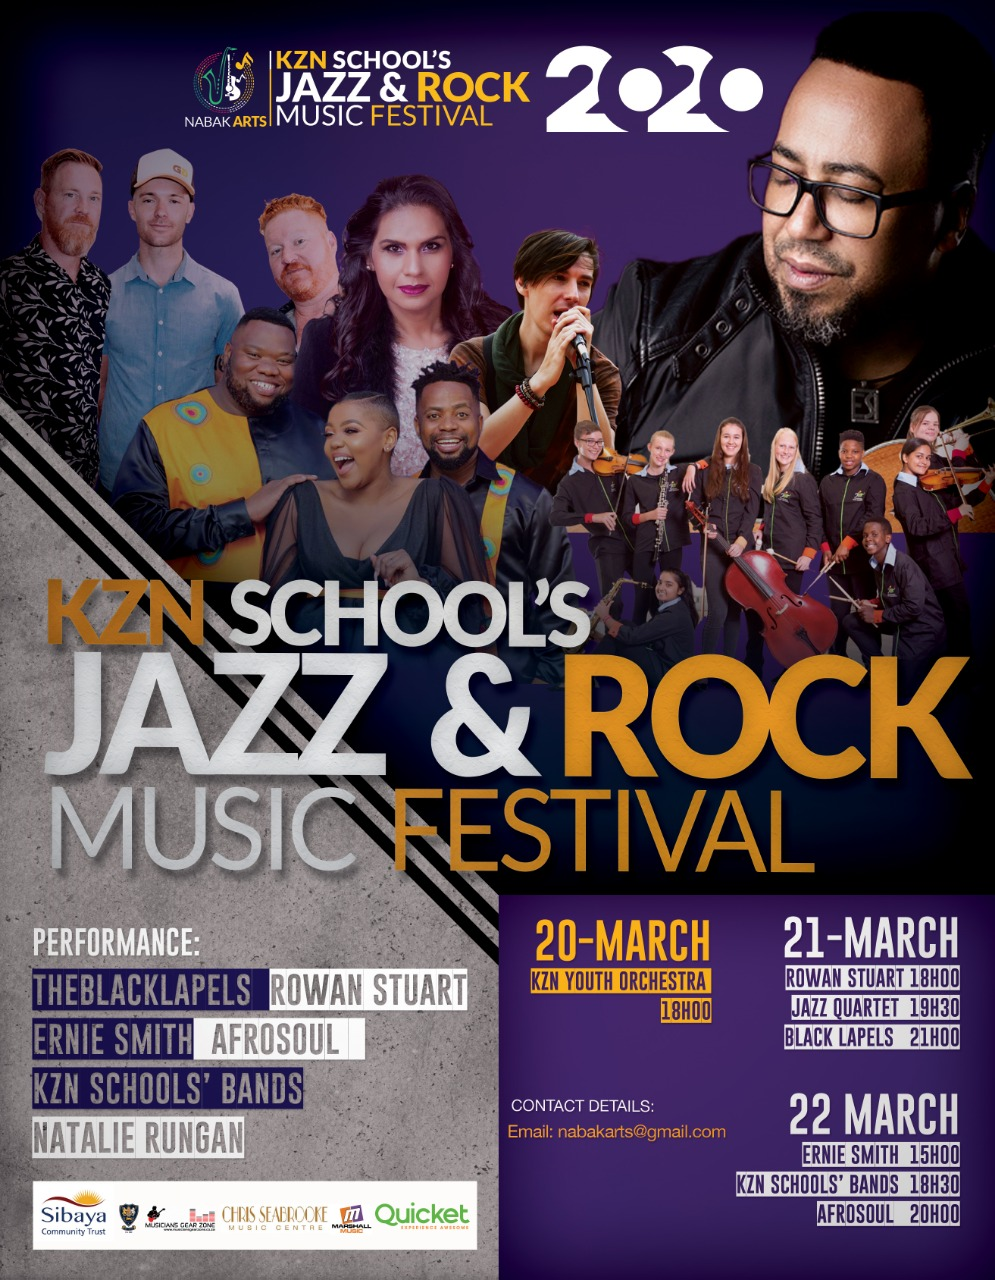 KZN Jazz & Rock Music Festival Tickets available from Quicket!